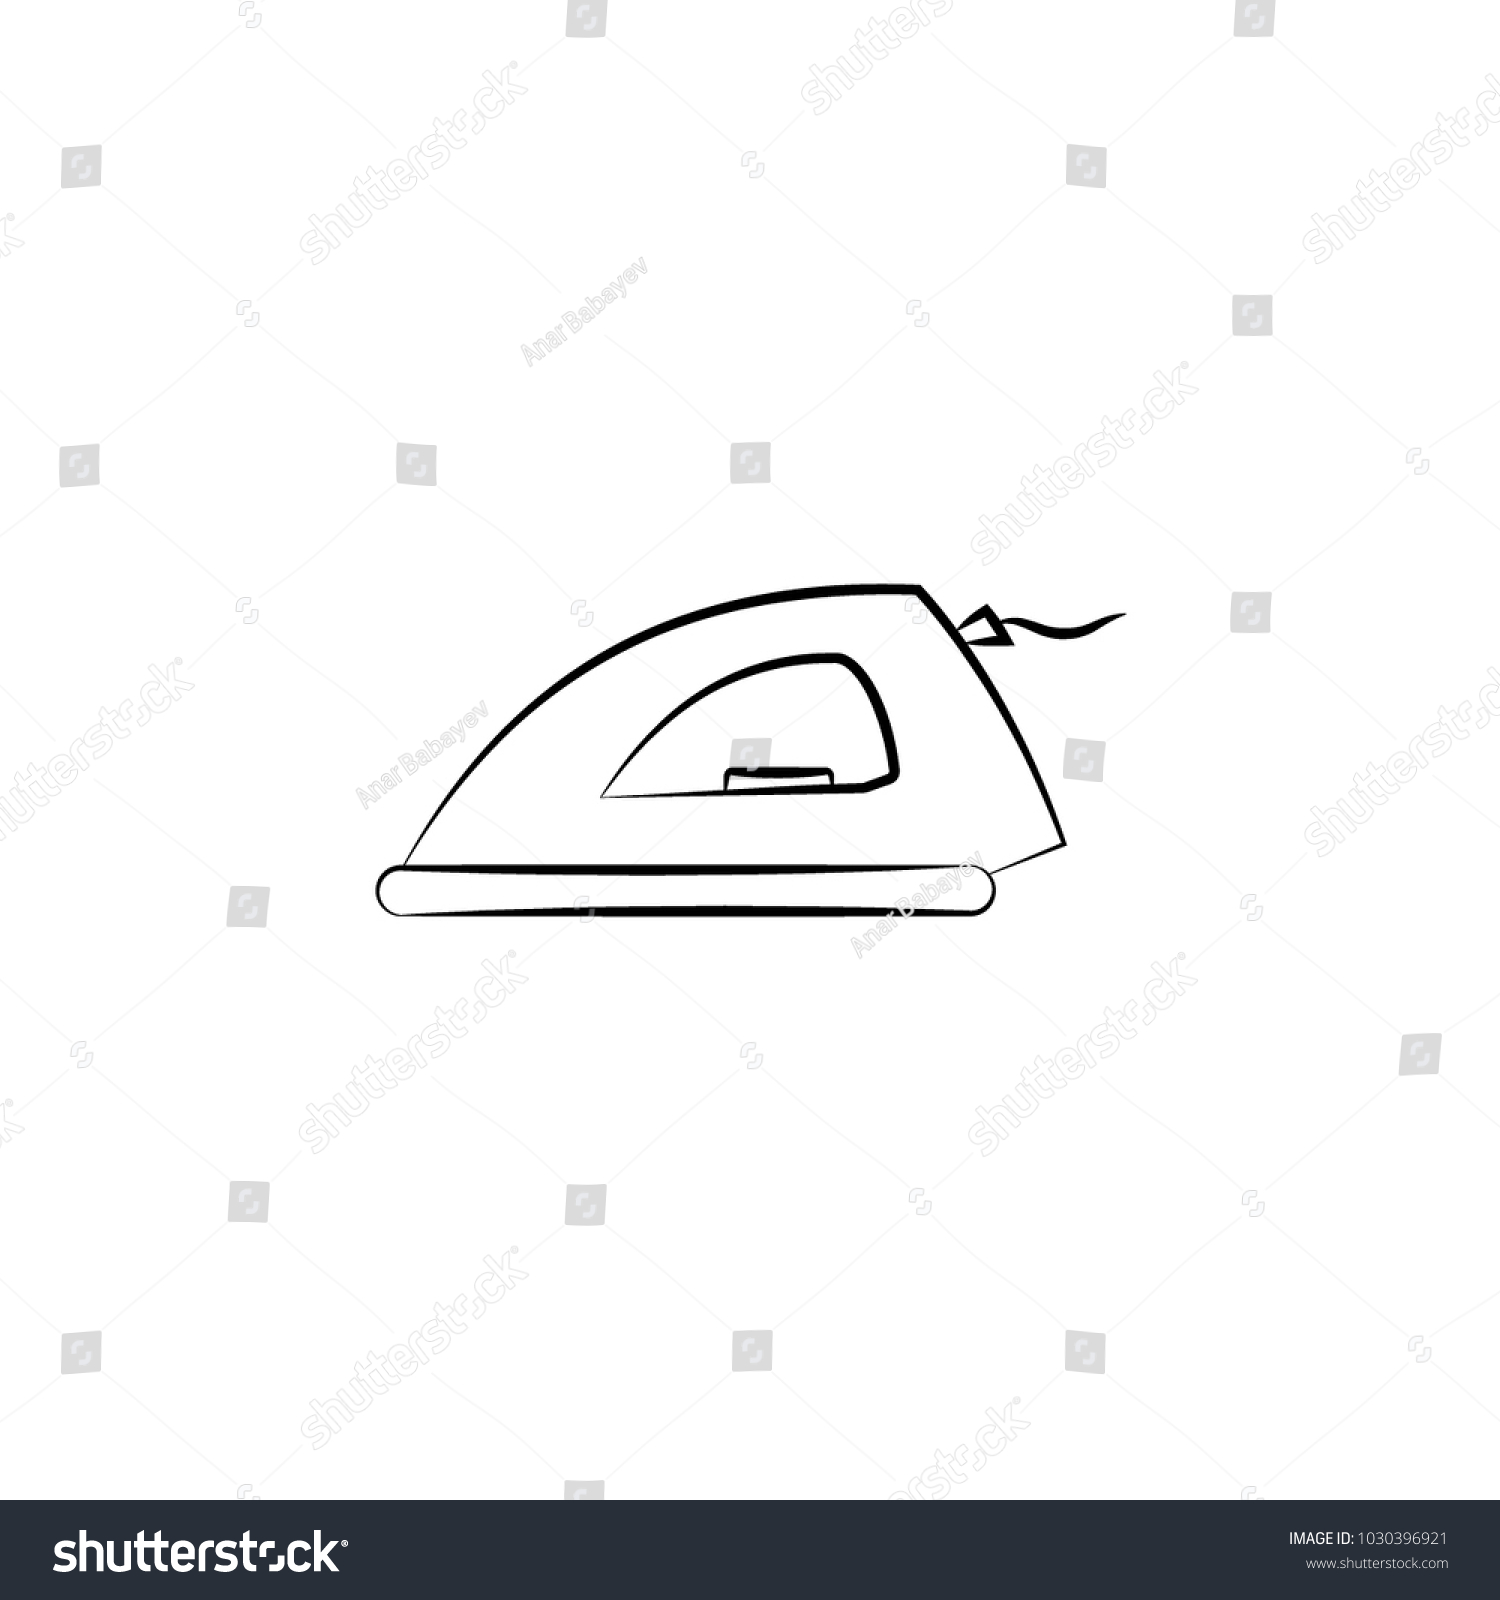 Iron icon element electrical devices icon stock vector 1030396921 element of electrical devices icon premium quality graphic design signs biocorpaavc Images